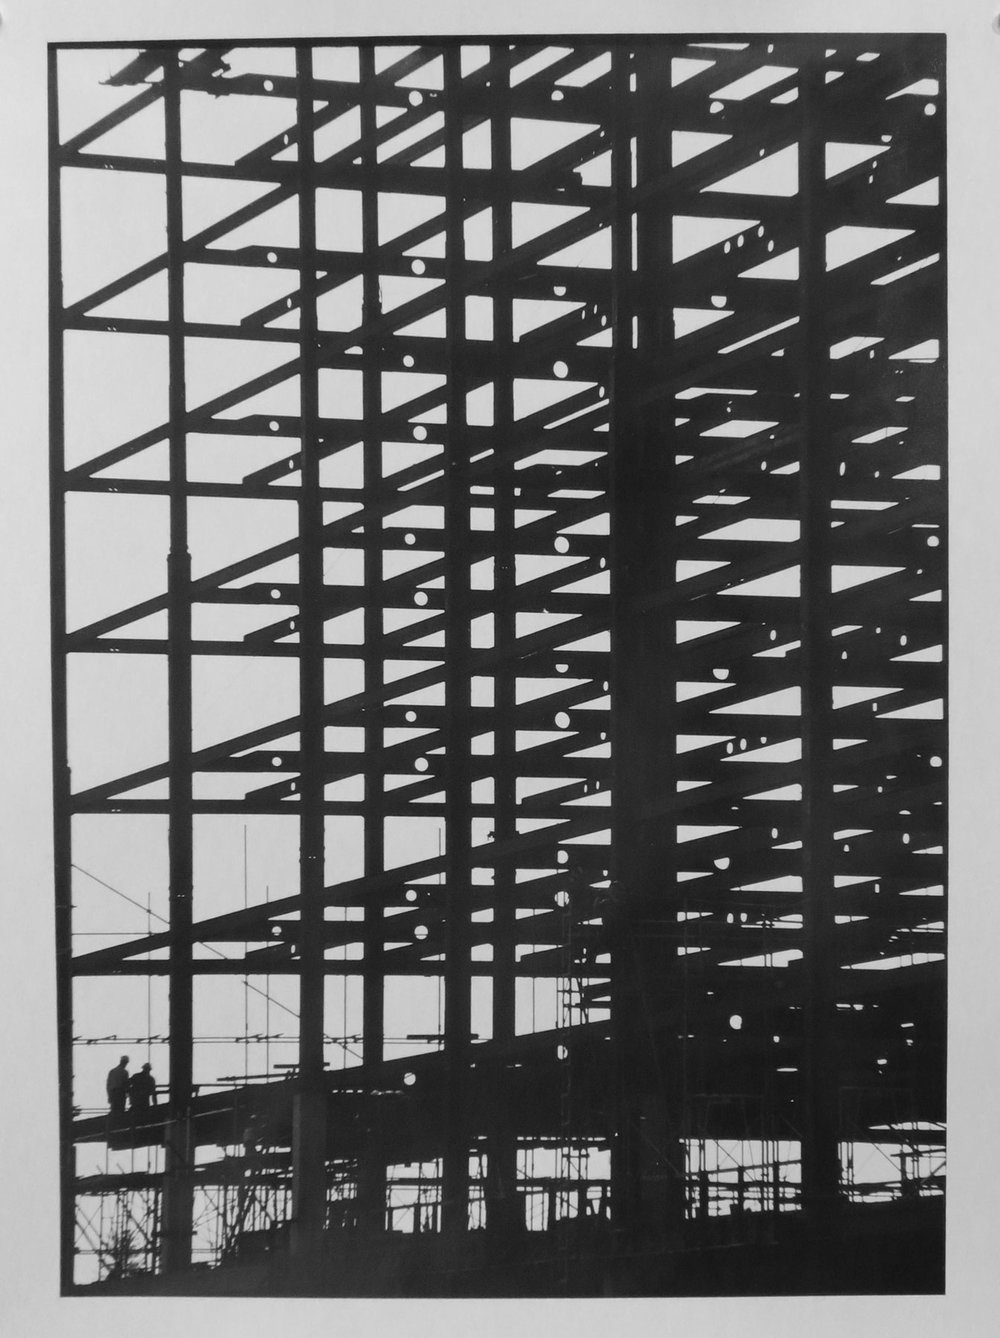 49. Richard Woldendorp, 'Construction of Dumas House, Kings Park Road, West Perth WA', BW228, taken and printed in c.1960, Vintage Print